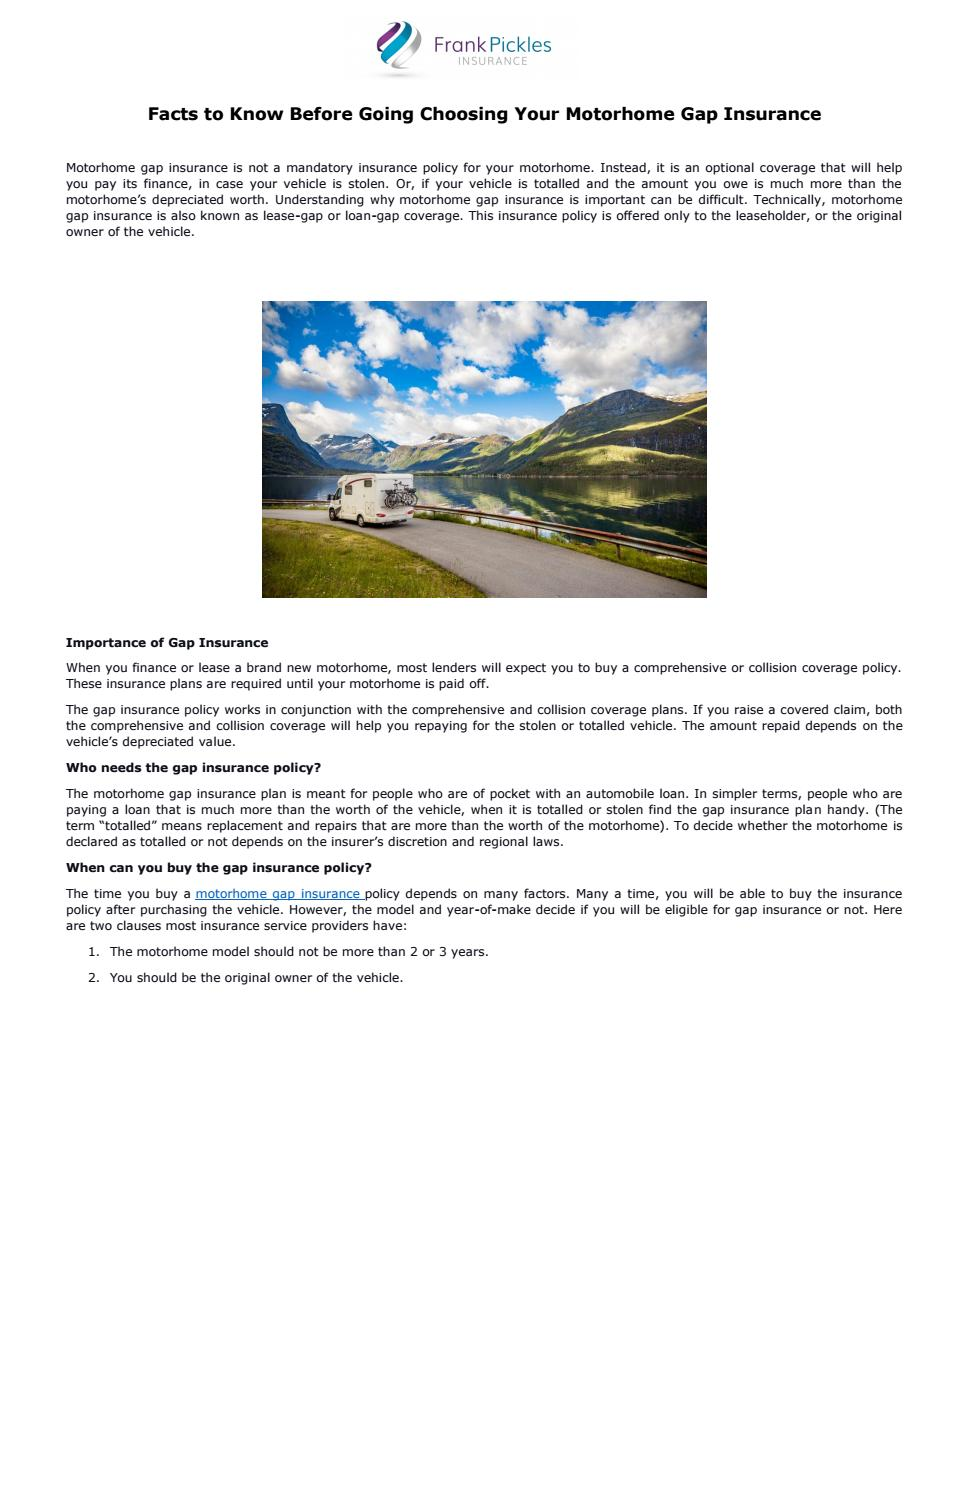 Facts To Know Before Going Choosing Your Motorhome Gap Insurance By Frankpickles Issuu